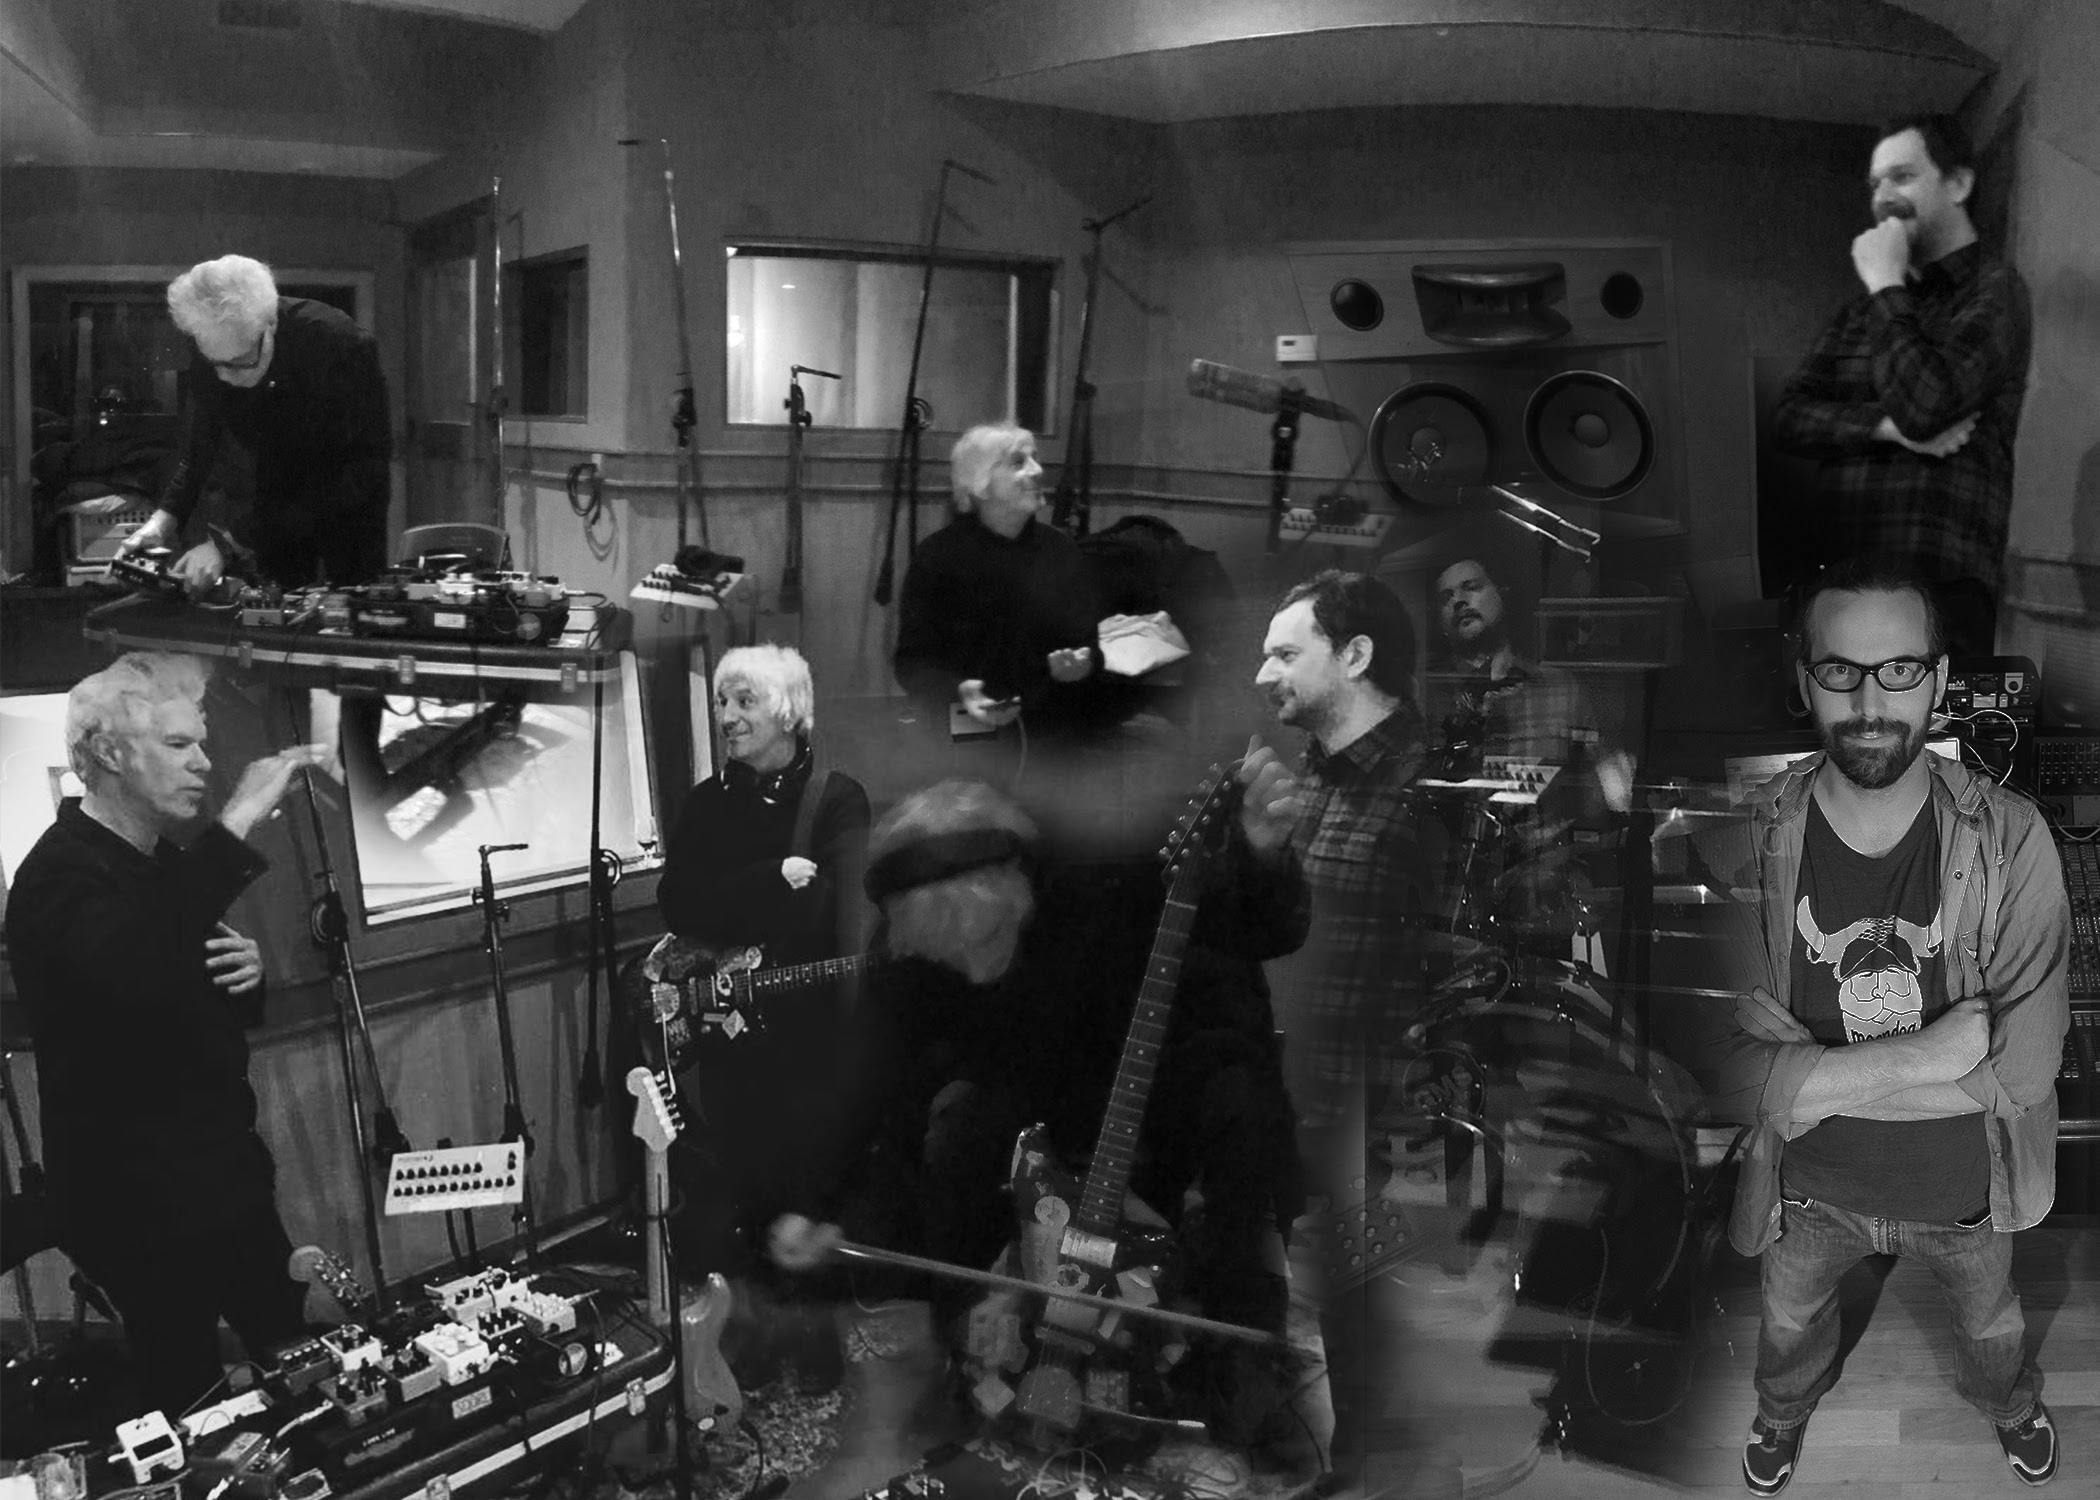 Lee Ranaldo/Jim Jarmusch/ Marc Urselli/Balazs Pandi, Photo by William Semeraro, Black and White, Norway